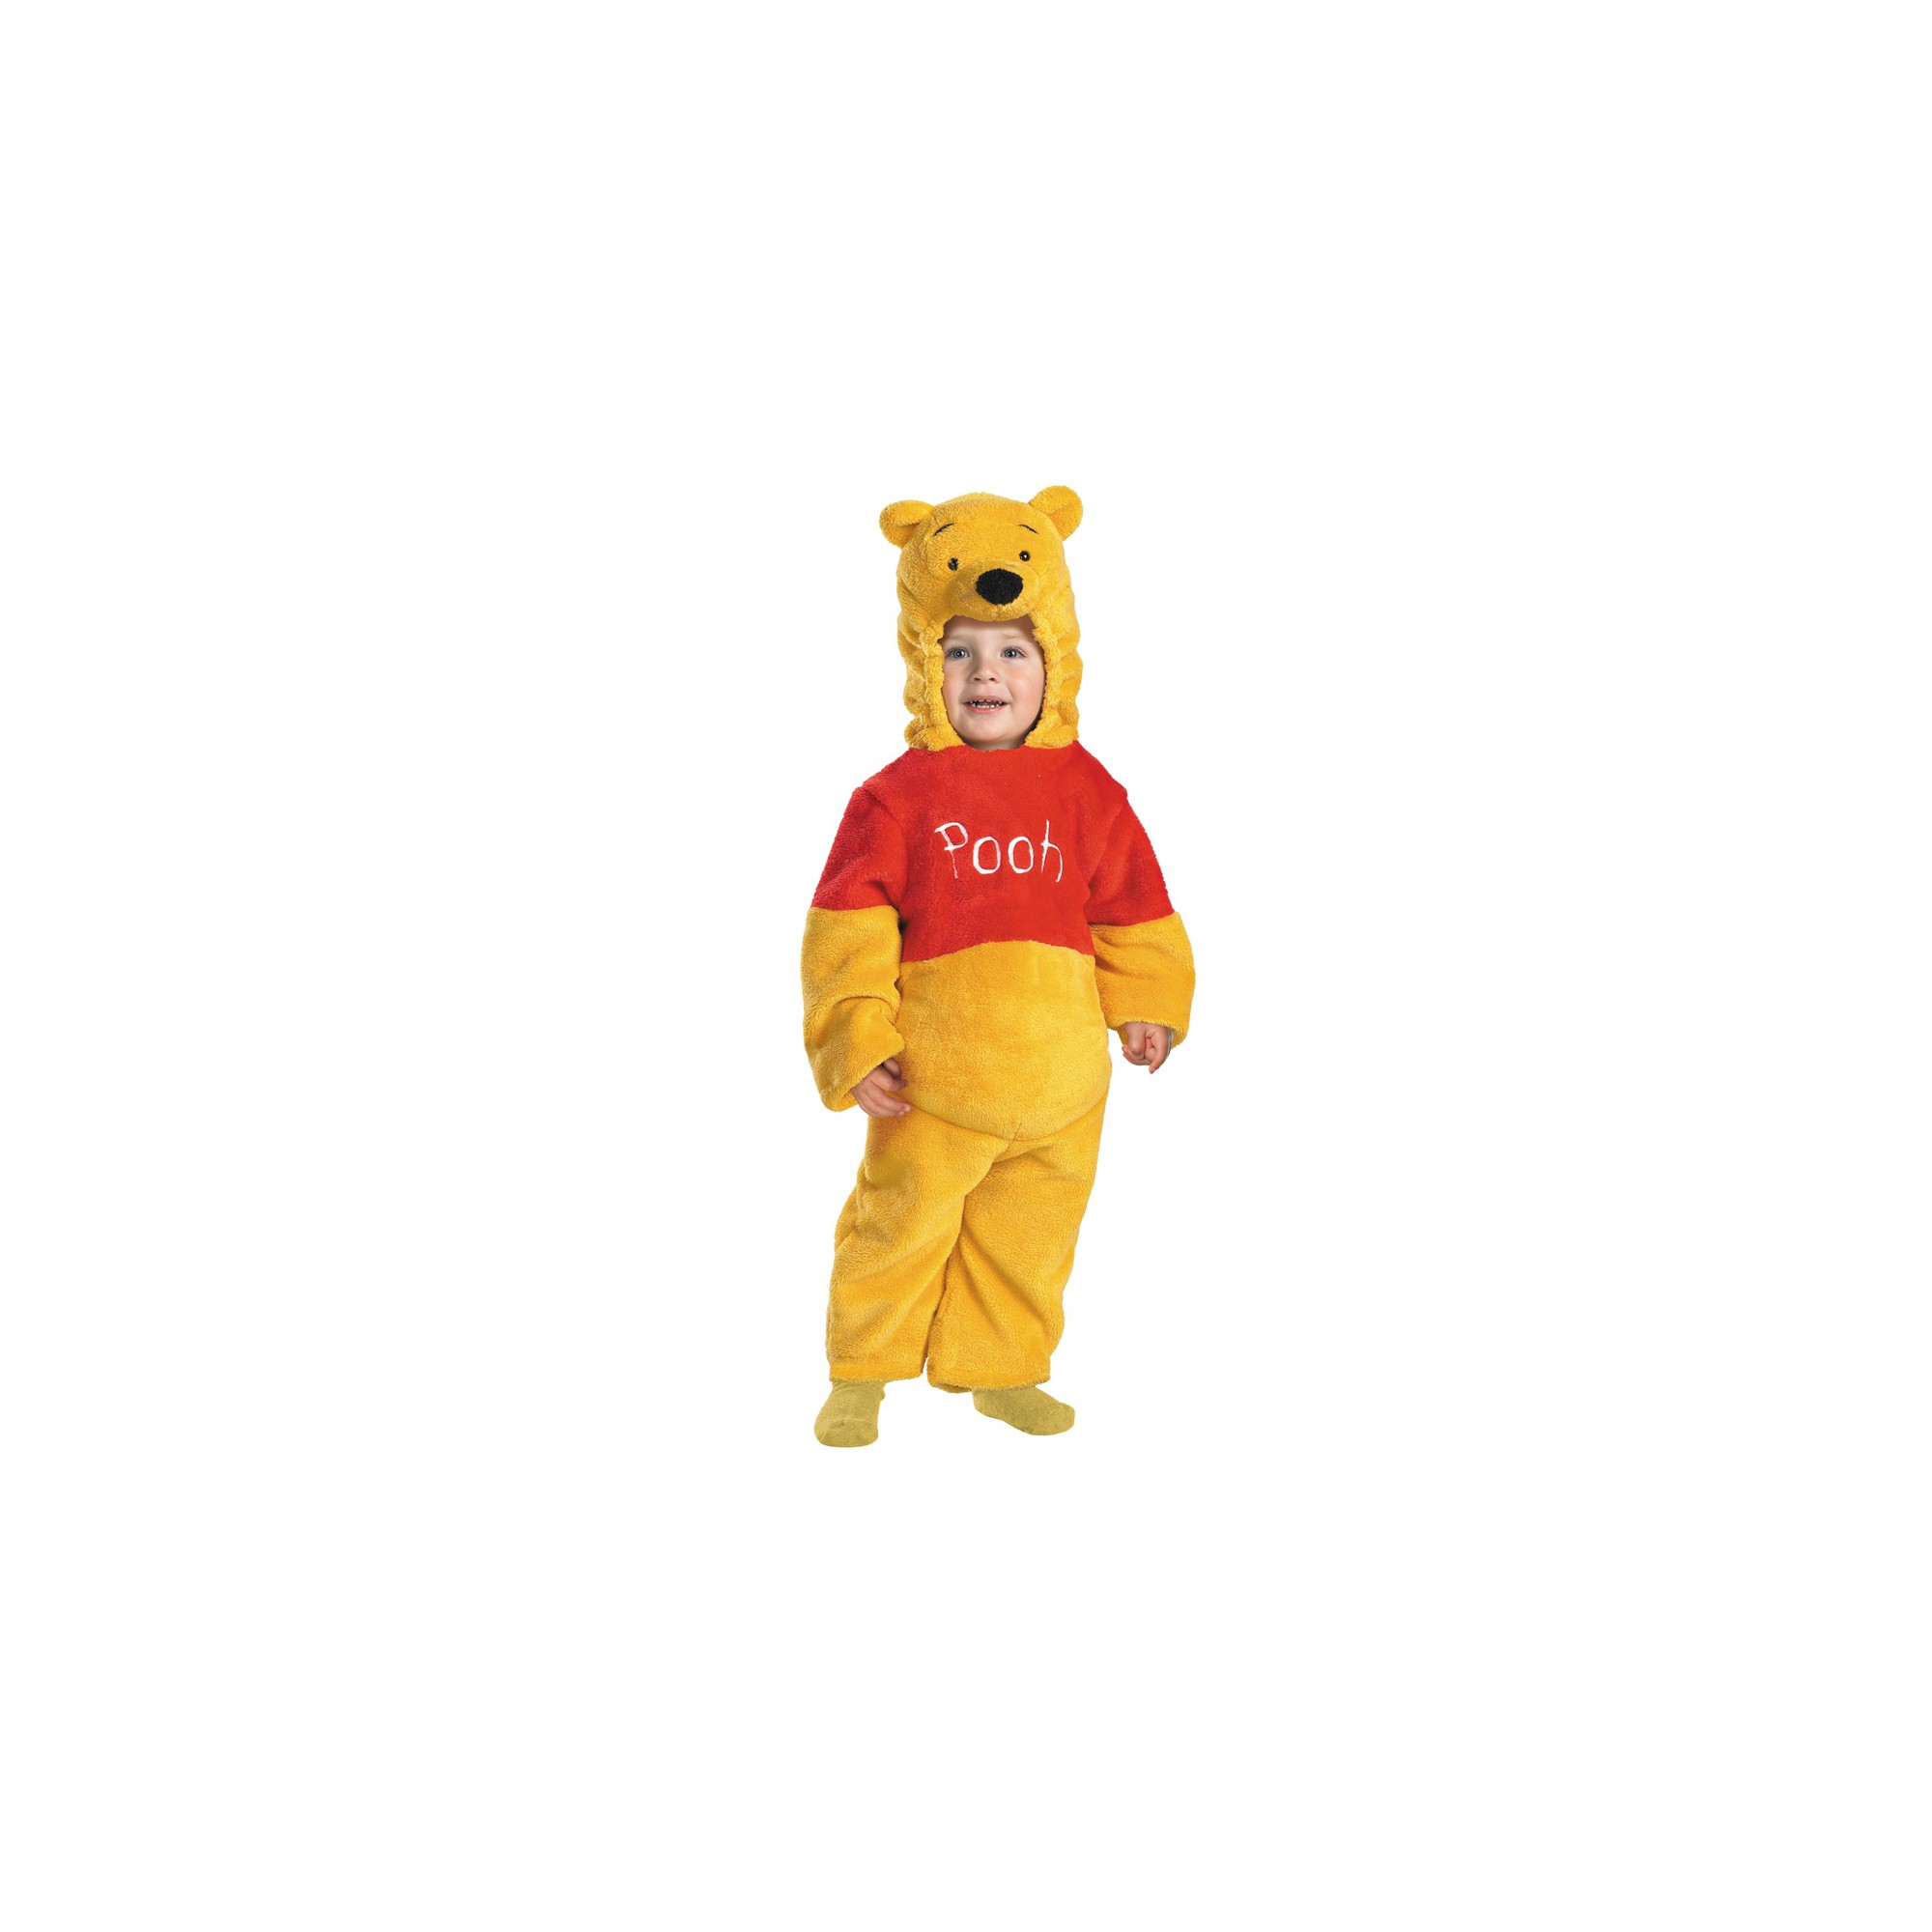 Halloween Disney Baby Winnie the Pooh Costume 12-18 M, Adult Unisex, Size: Medium